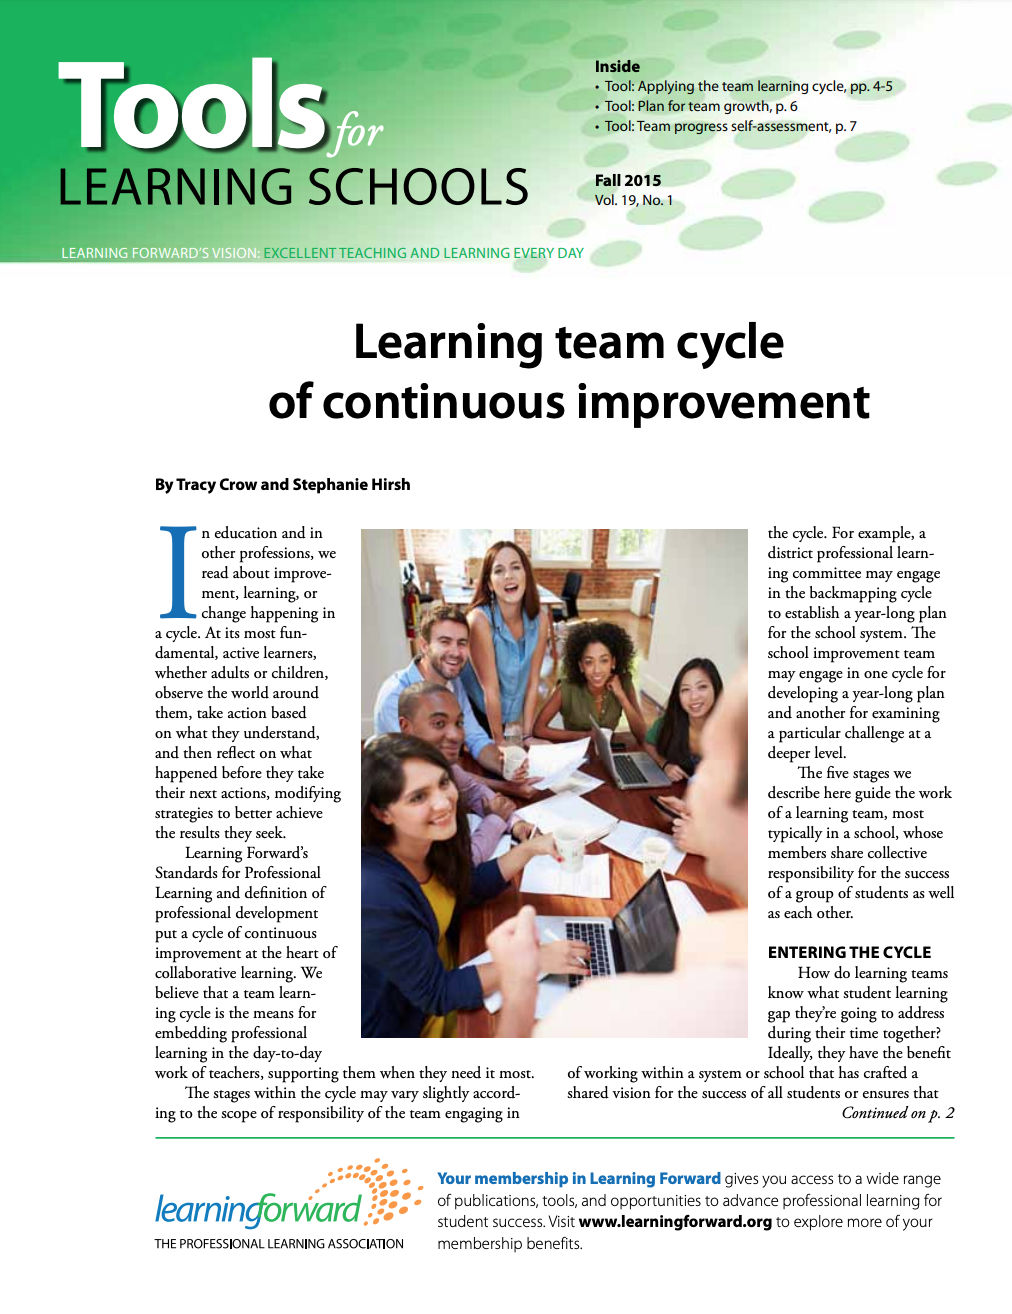 tools-for-learning-schools-fall-2015-vol-19-no-1